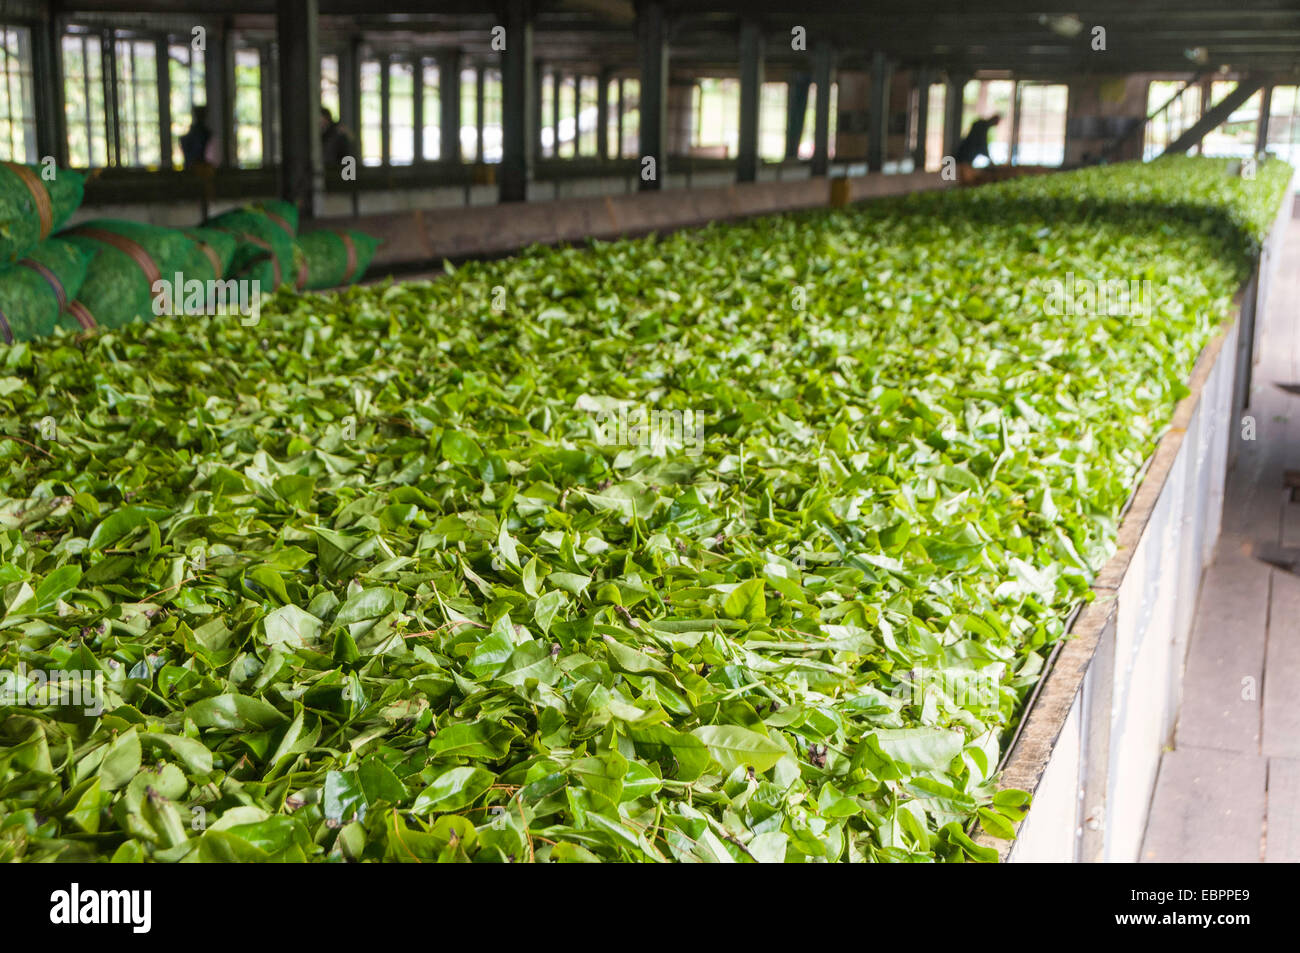 Freshly picked tea being prepared for drying in a tea plantation in Kandy, Sri Lanka, Asia Stock Photo